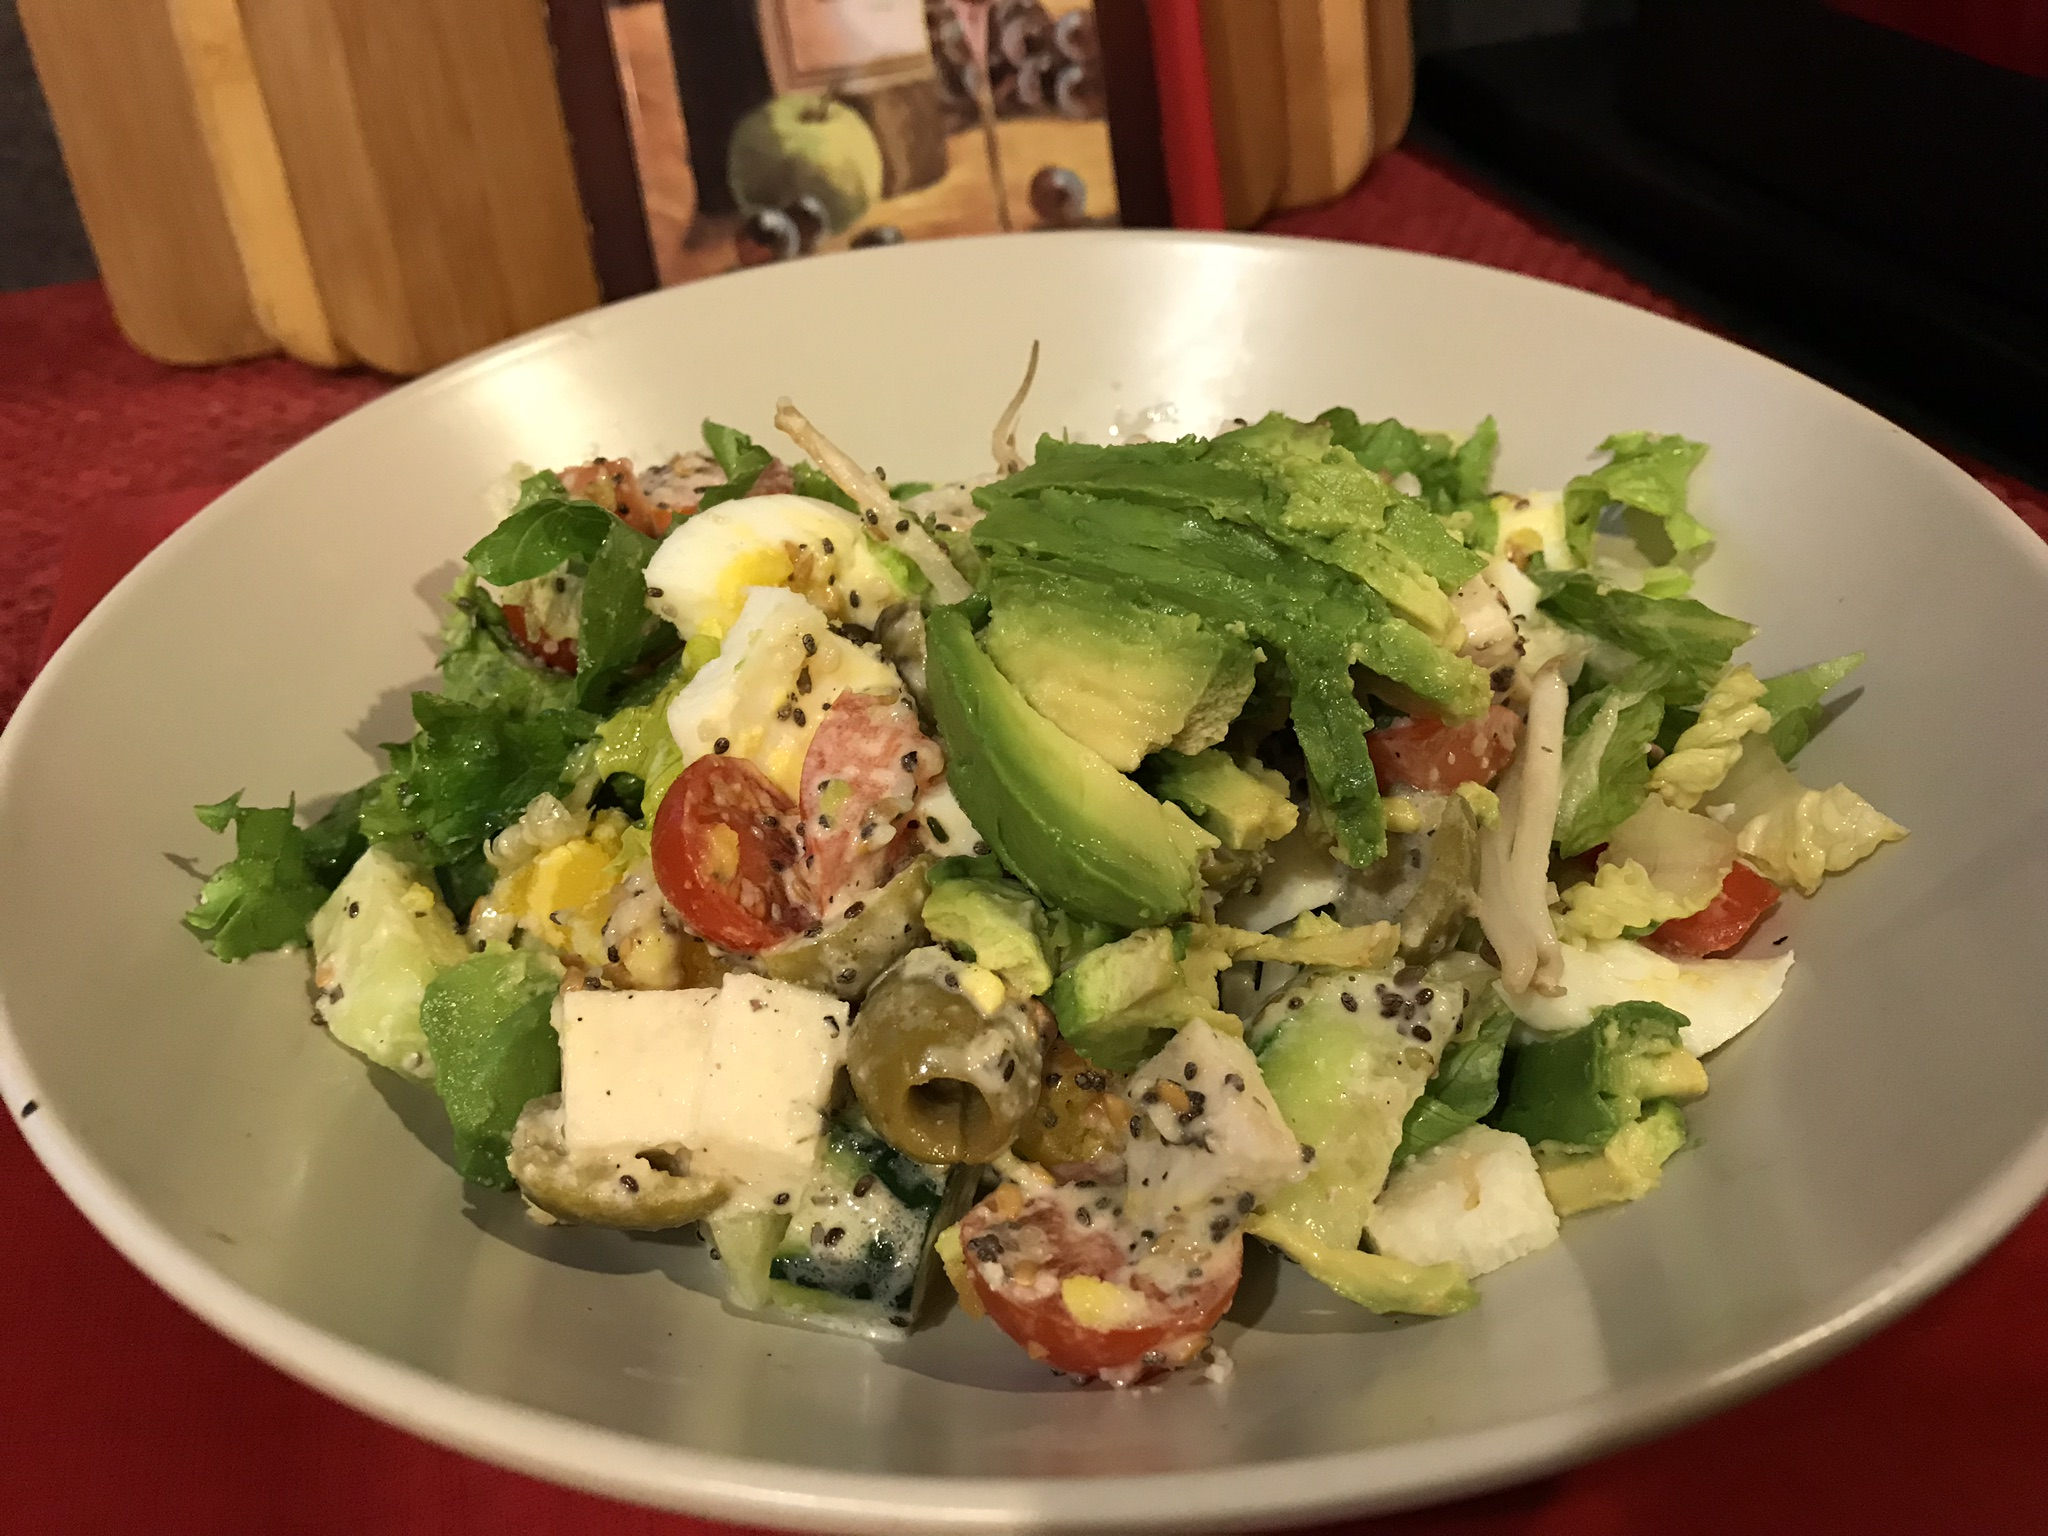 Keto High Fiber, High Fat Salad